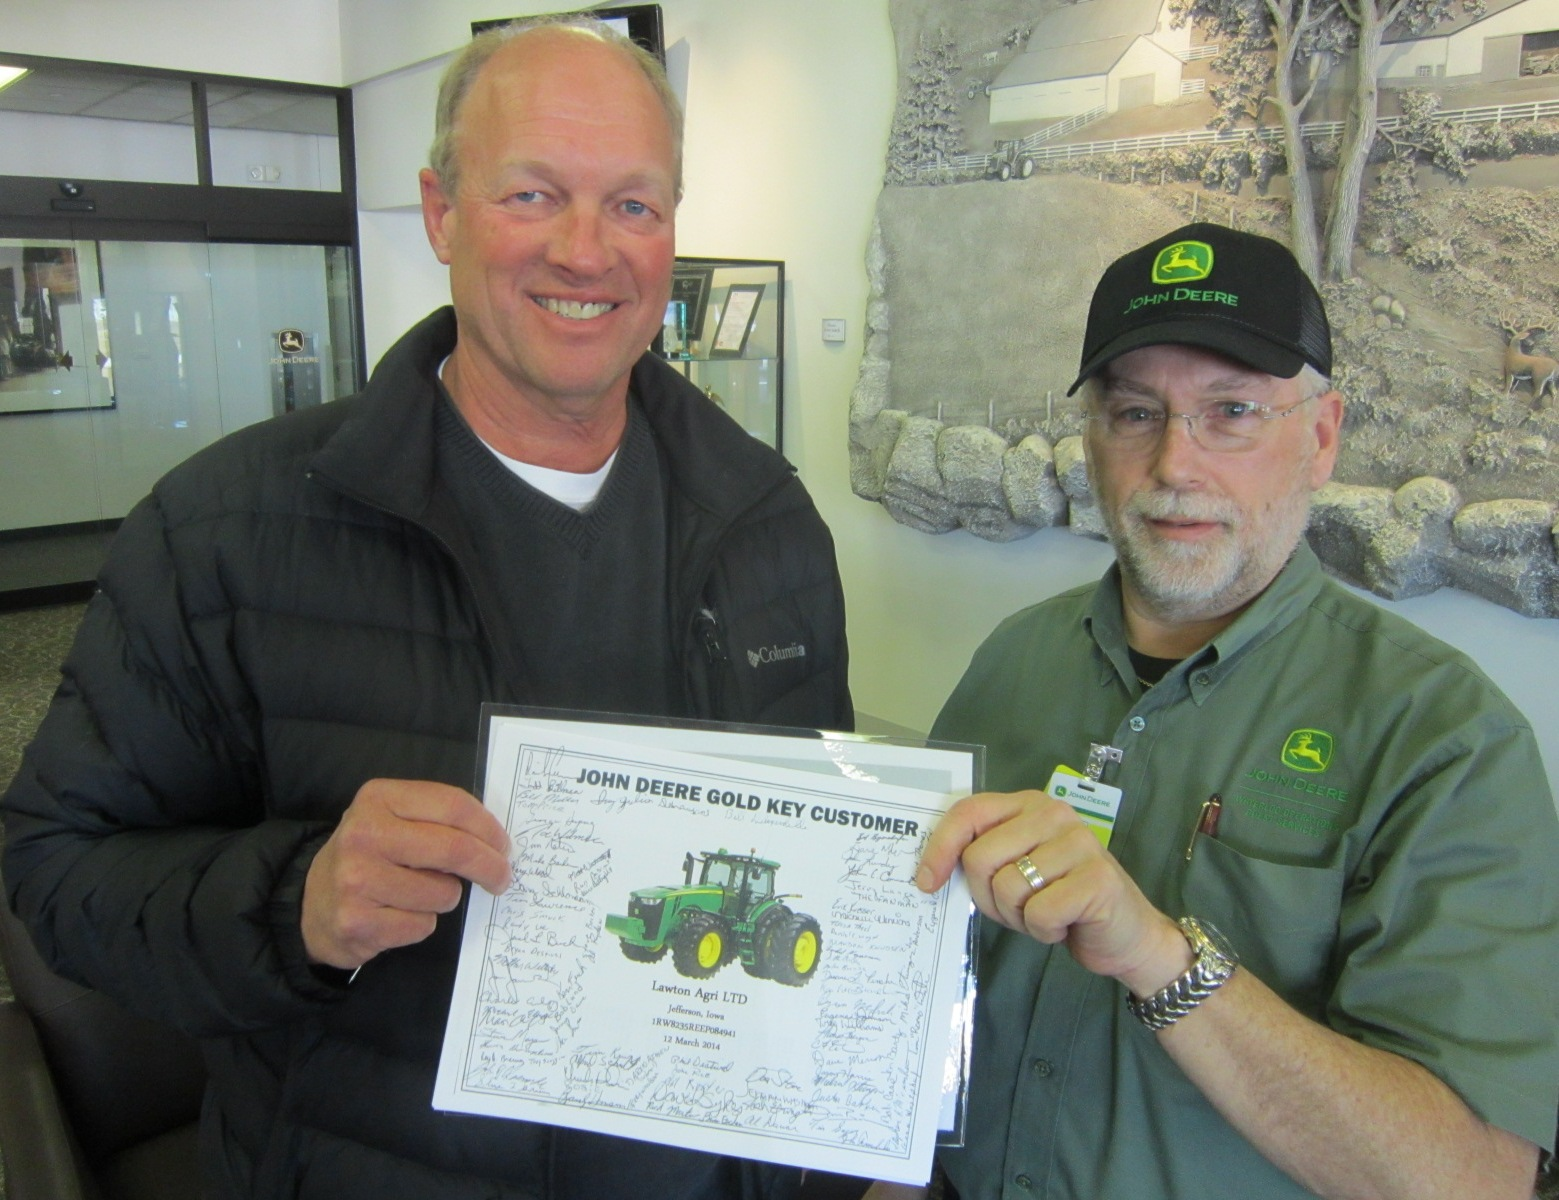 Doug Lawton Gary Vick Certif Signed by Tractor Building Team.JPG